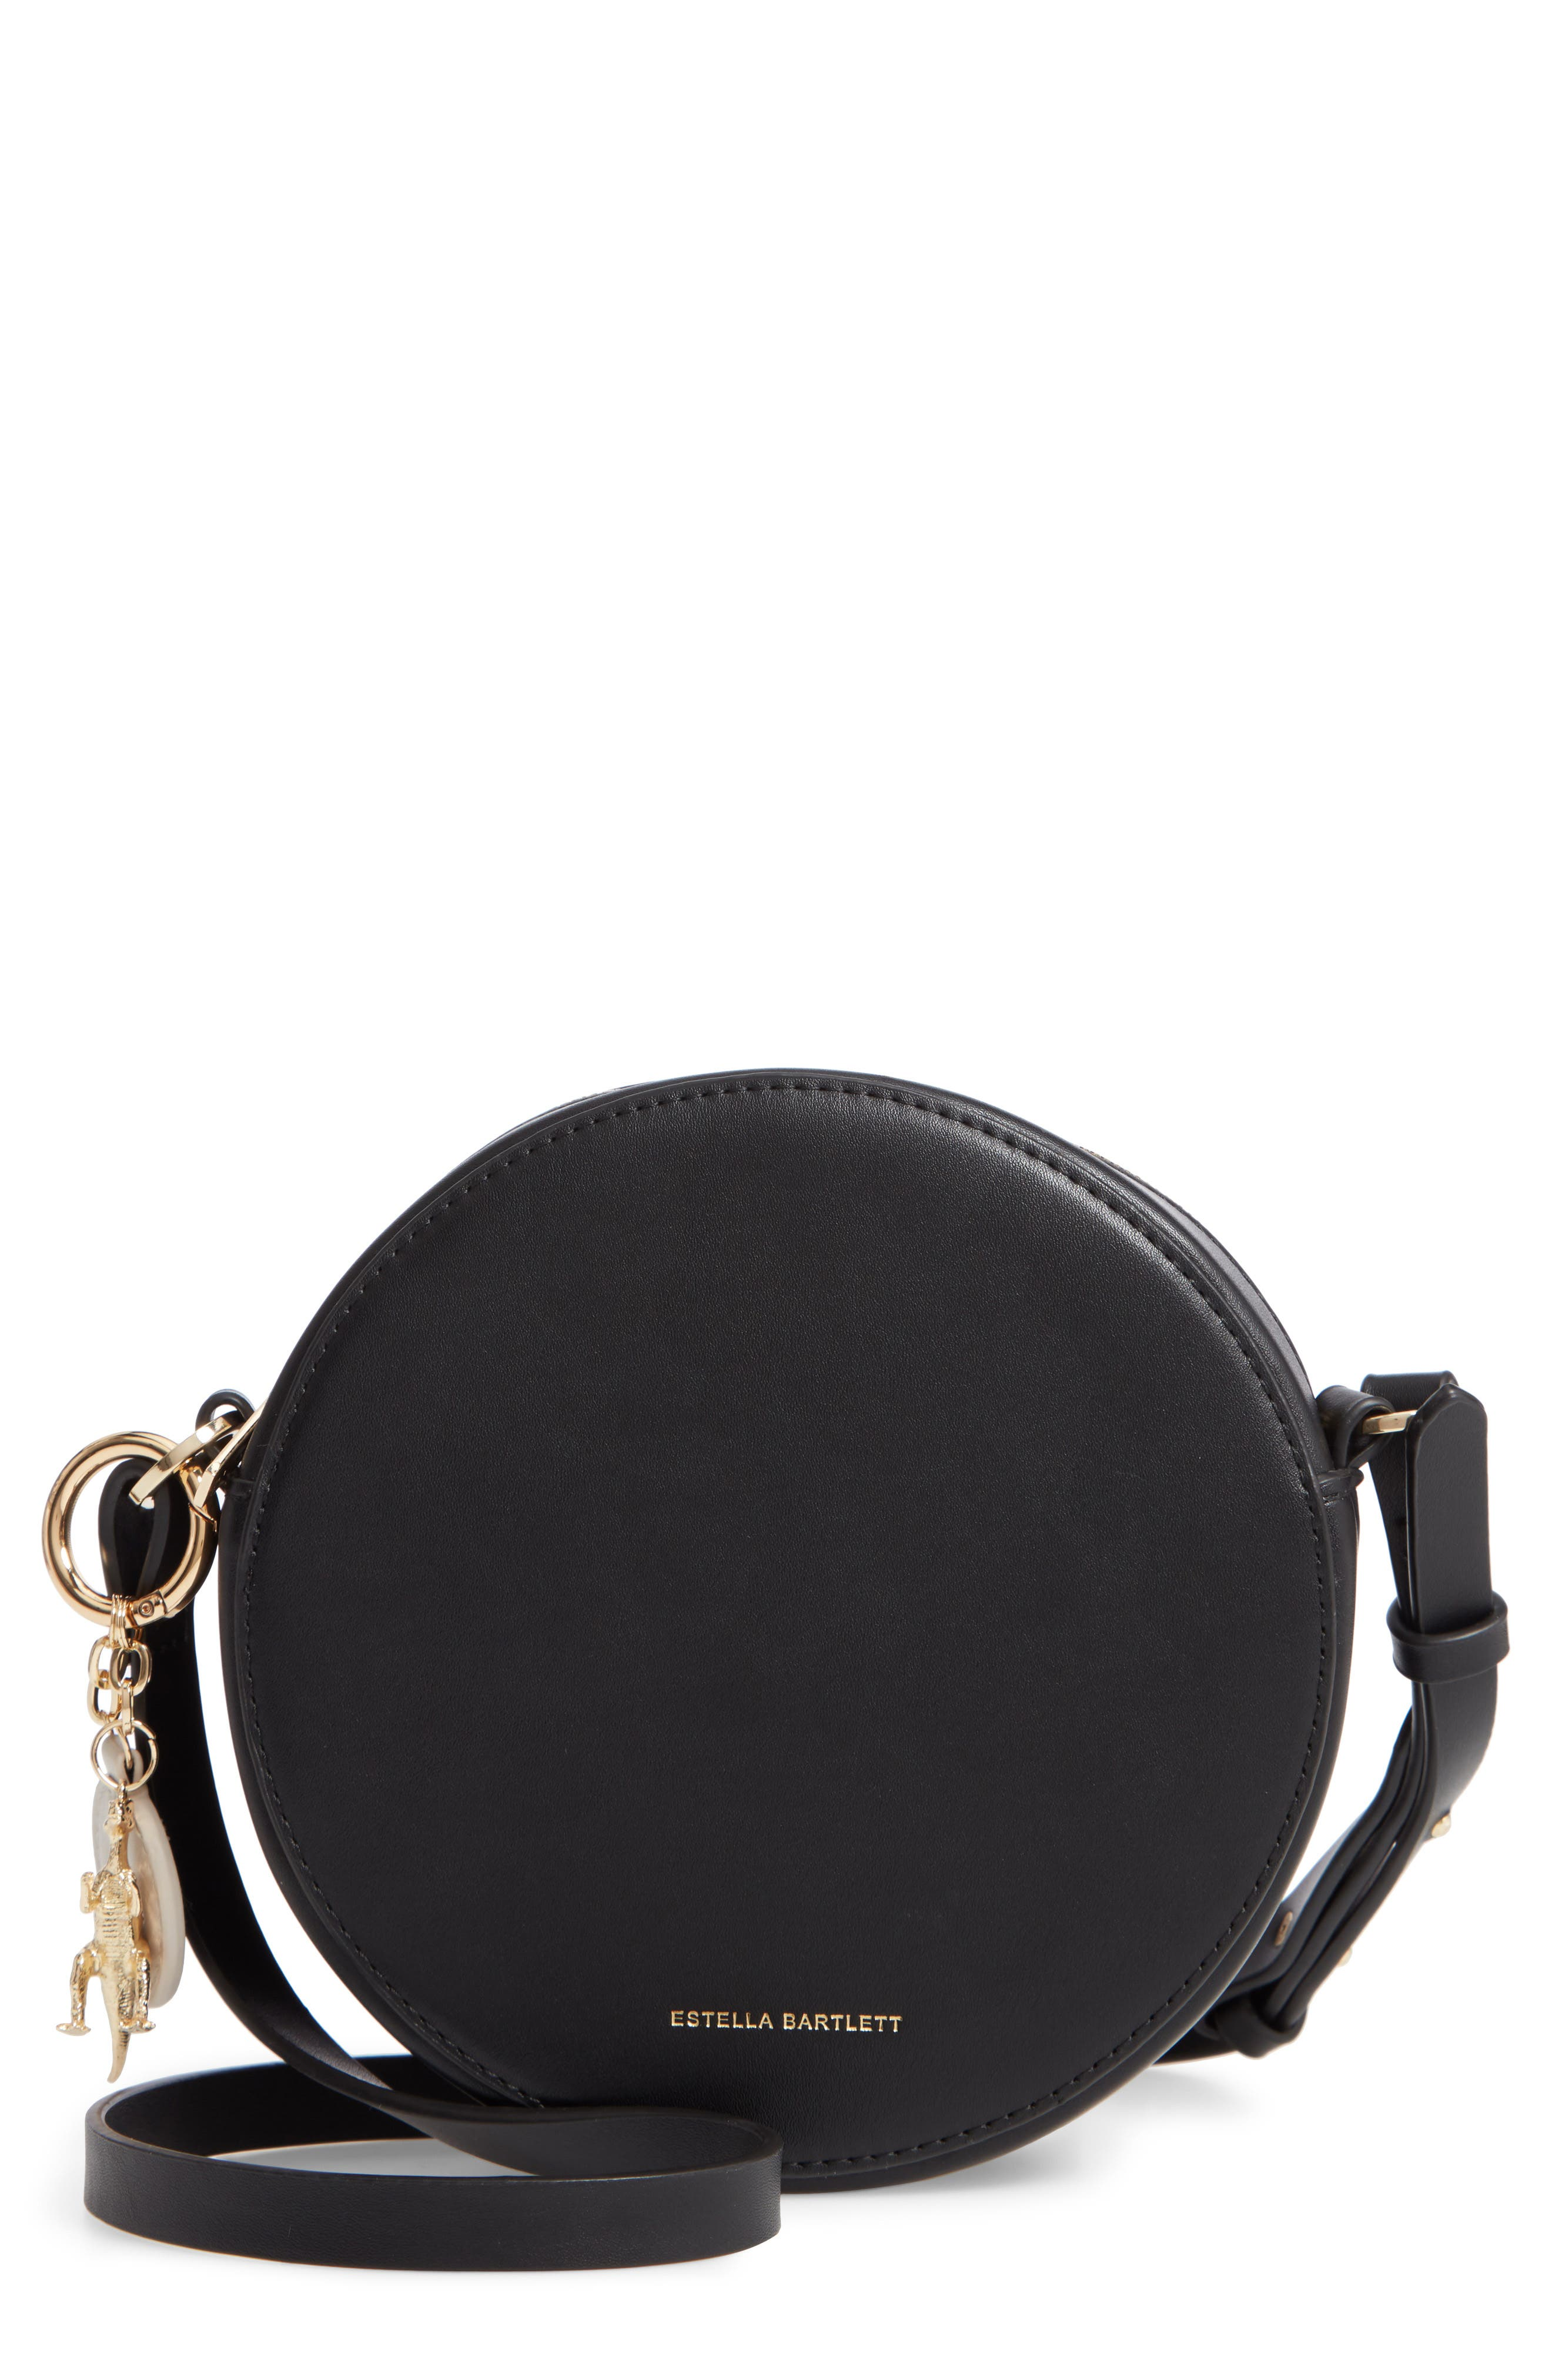 Emerson Faux Leather Round Bag,                             Main thumbnail 1, color,                             BLACK/ YELLOW